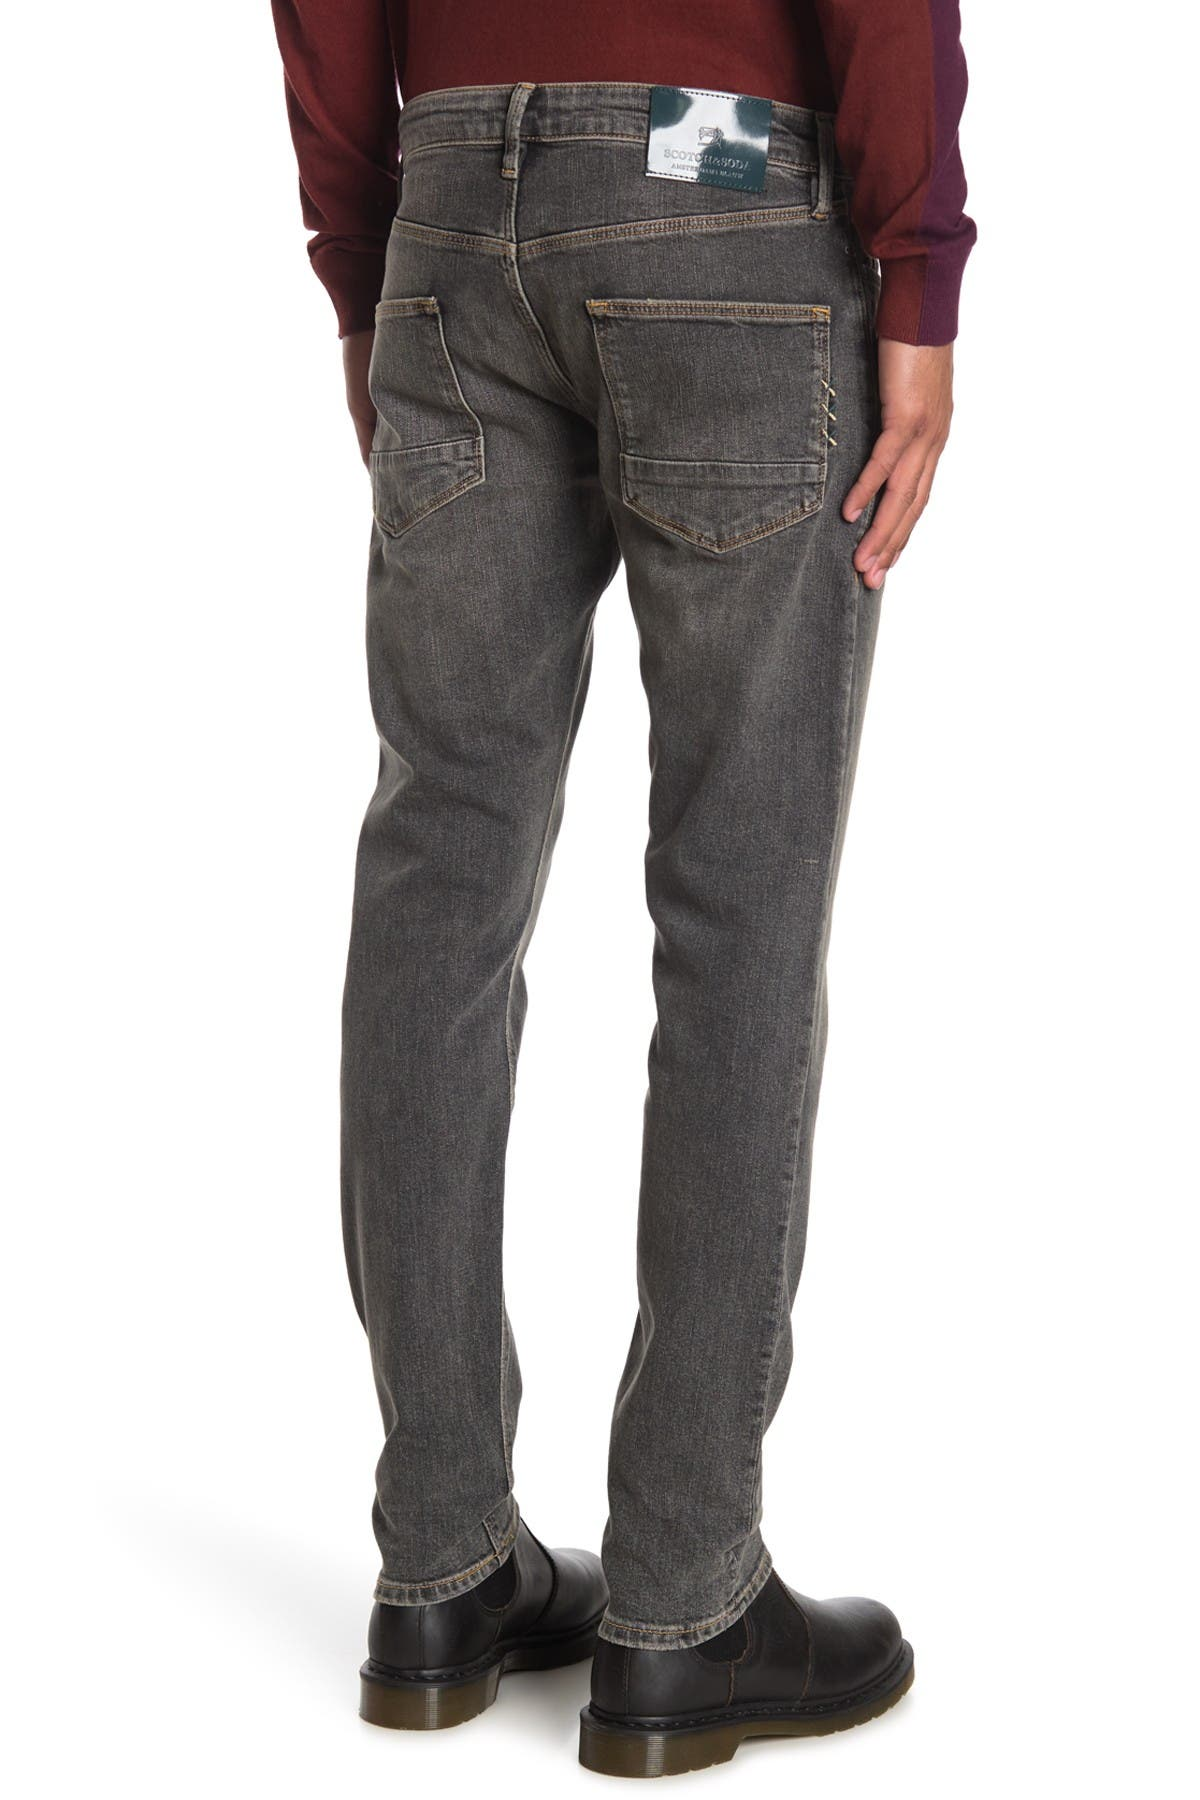 Image of Scotch & Soda Tye Warehouse Skinny Jeans